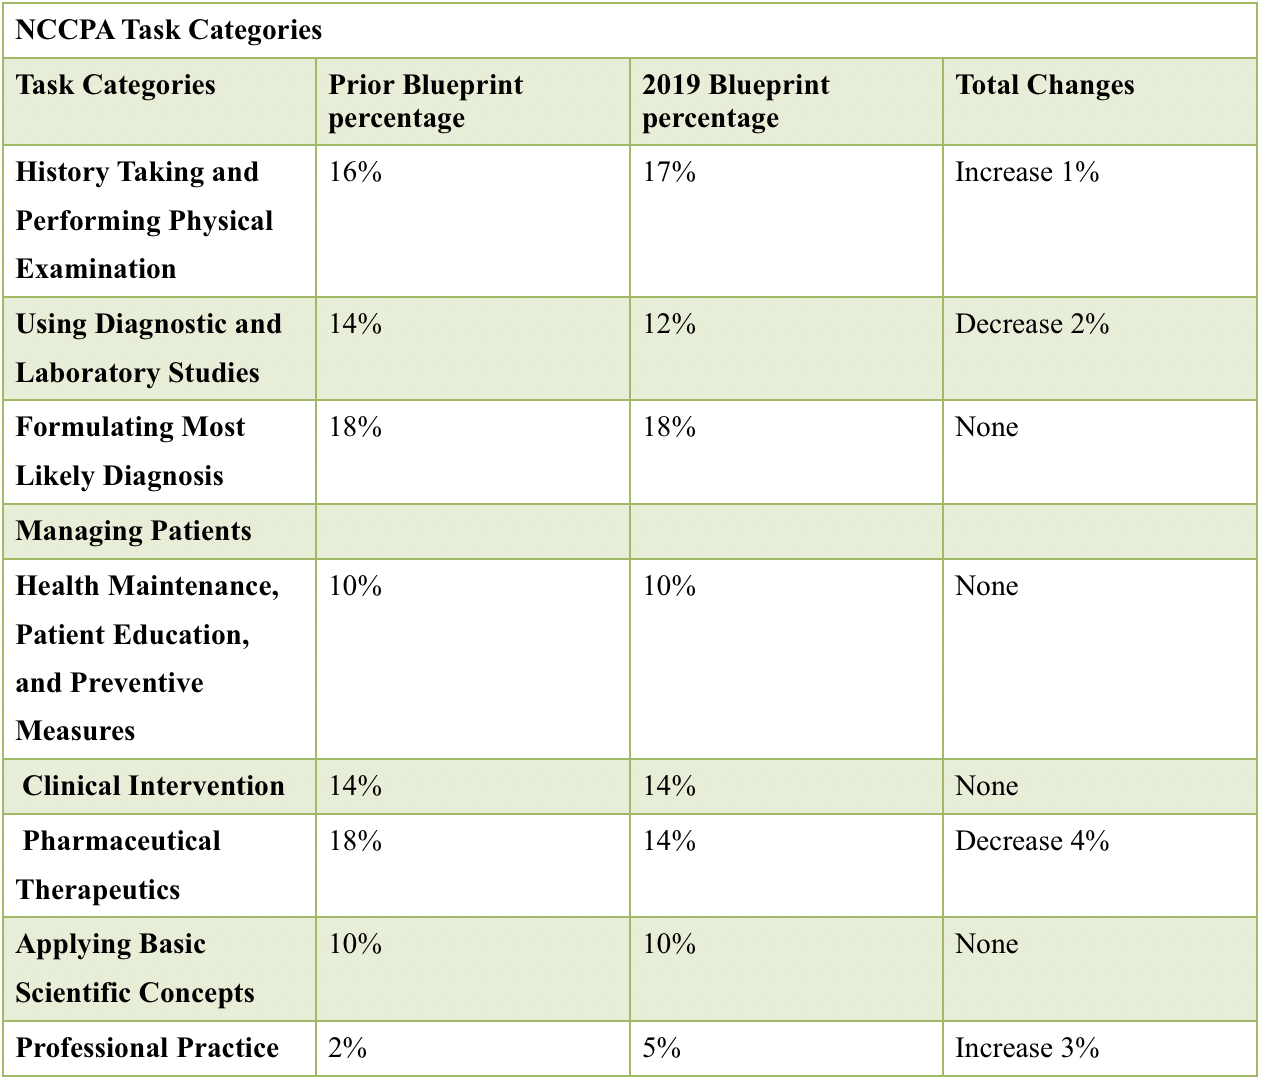 NCCPA Task Categories